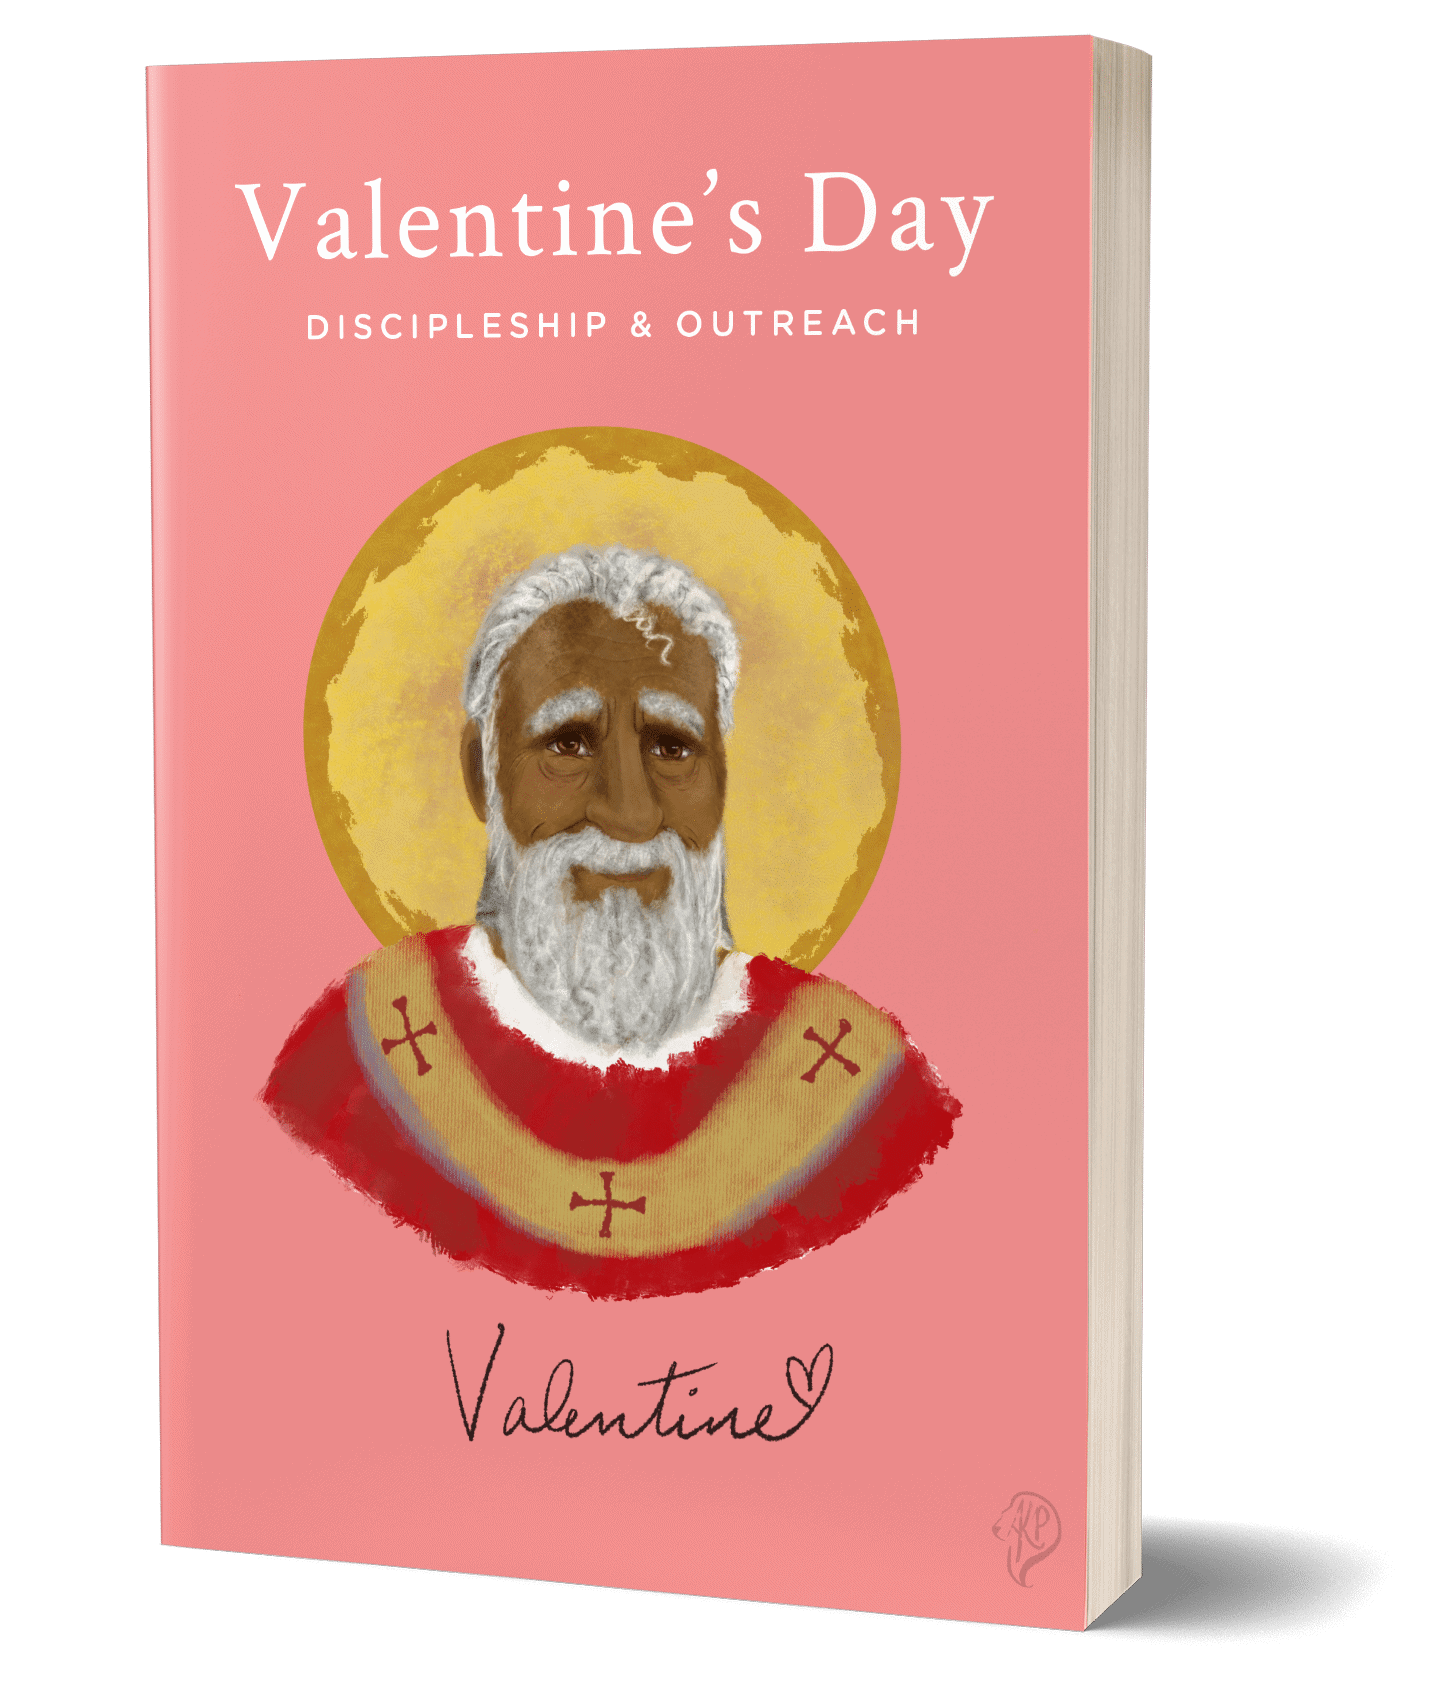 Get your complete Valentine's Day discipleship guide!